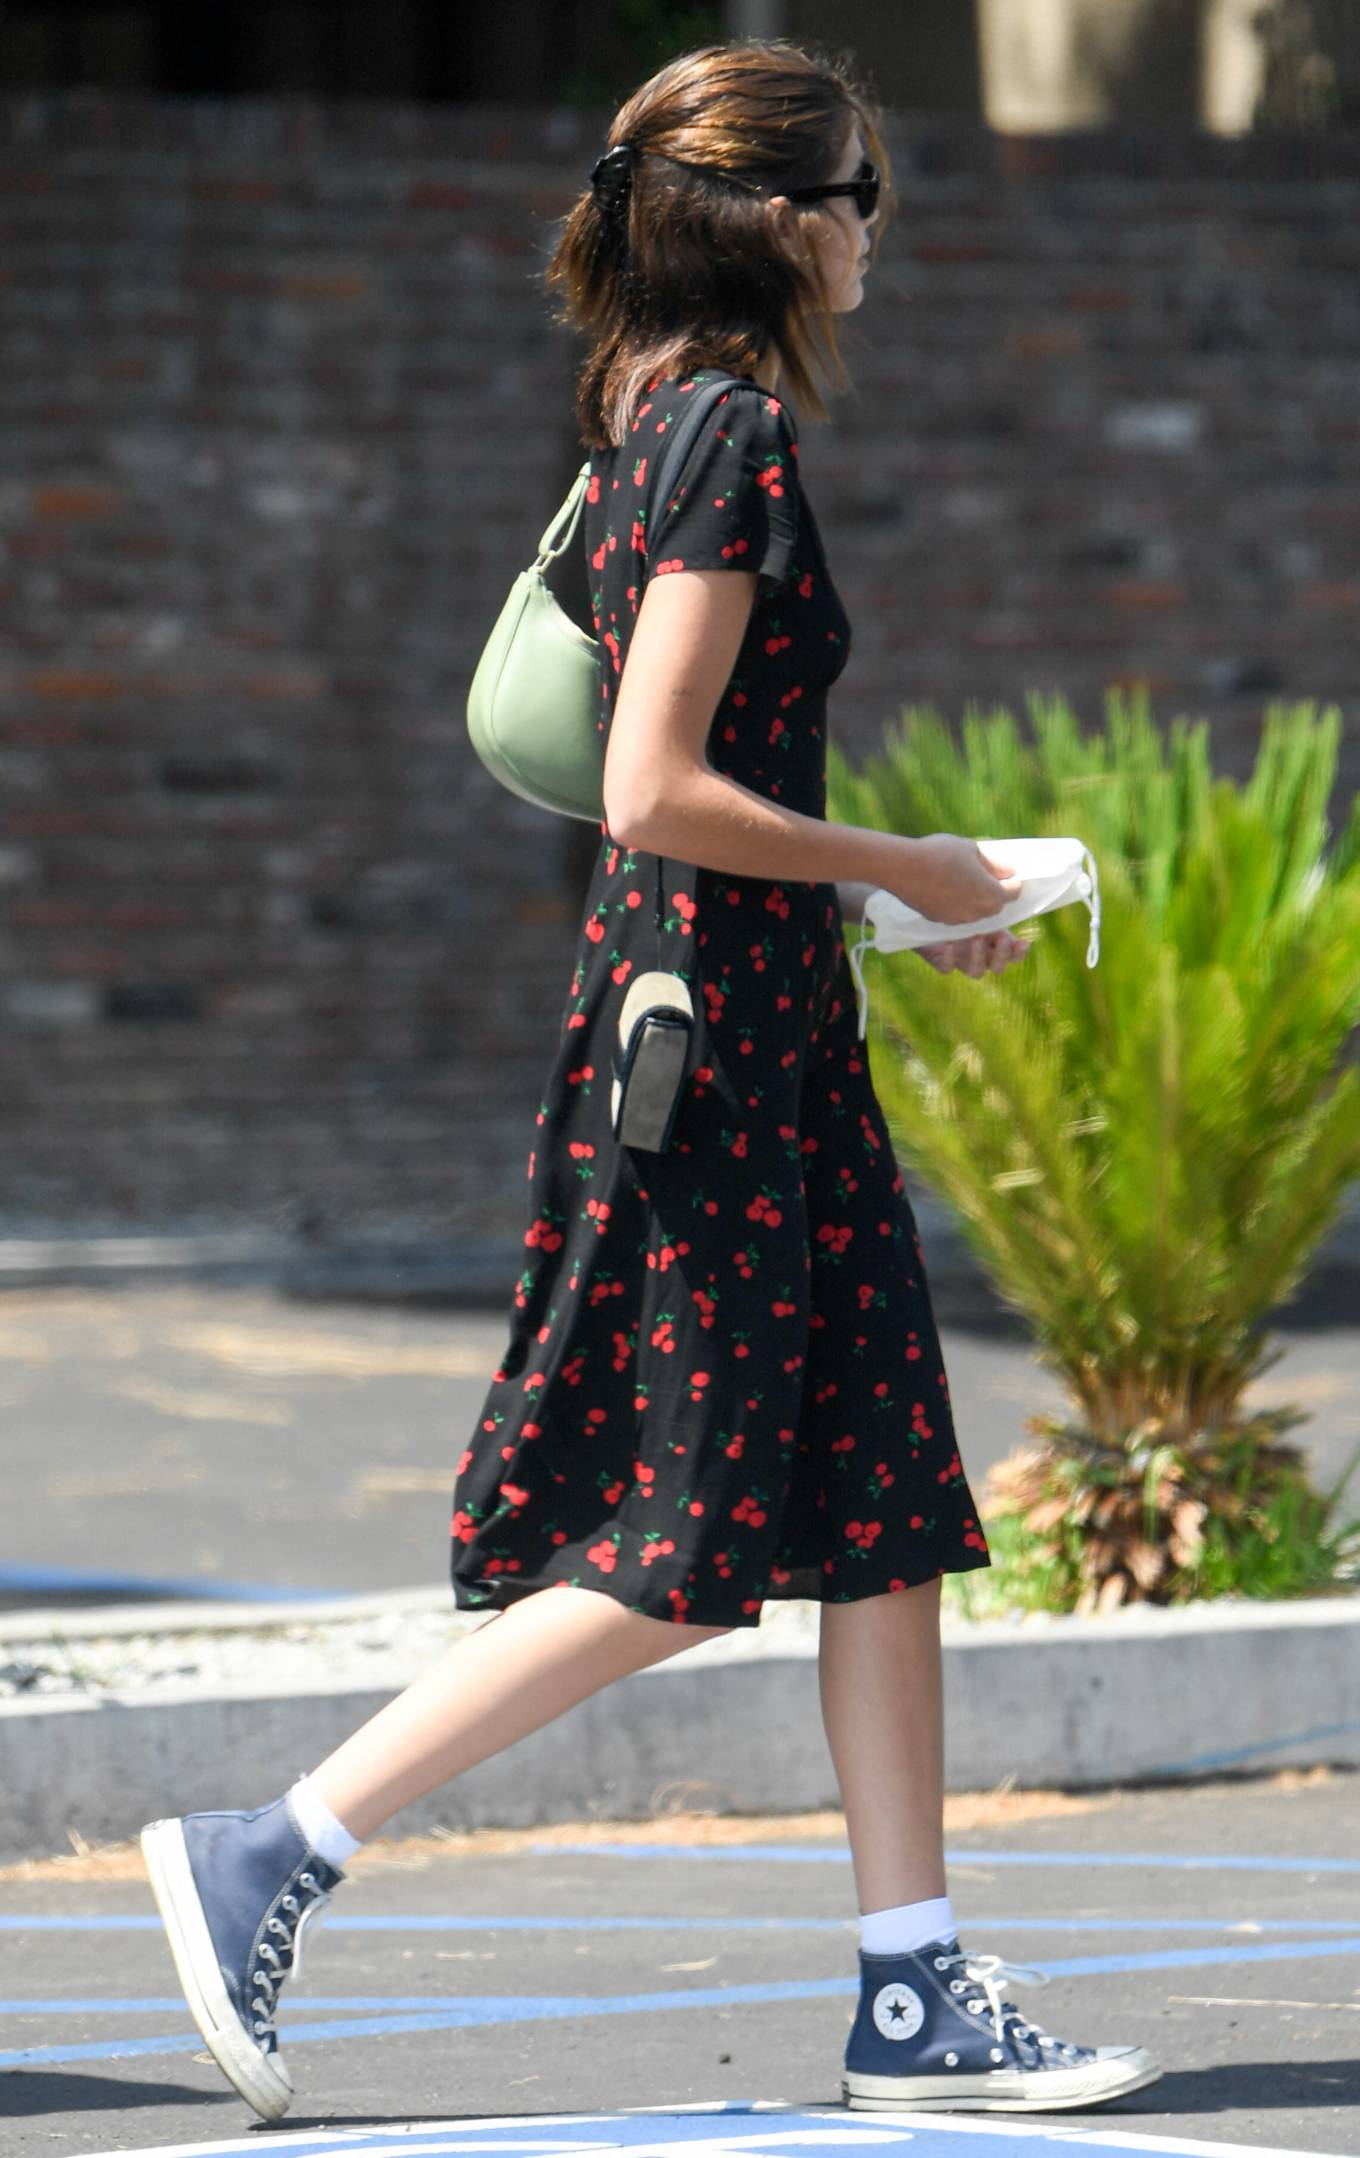 Kaia Gerber wearing a fitted black dress with short sleeves, lapel collar and floral print